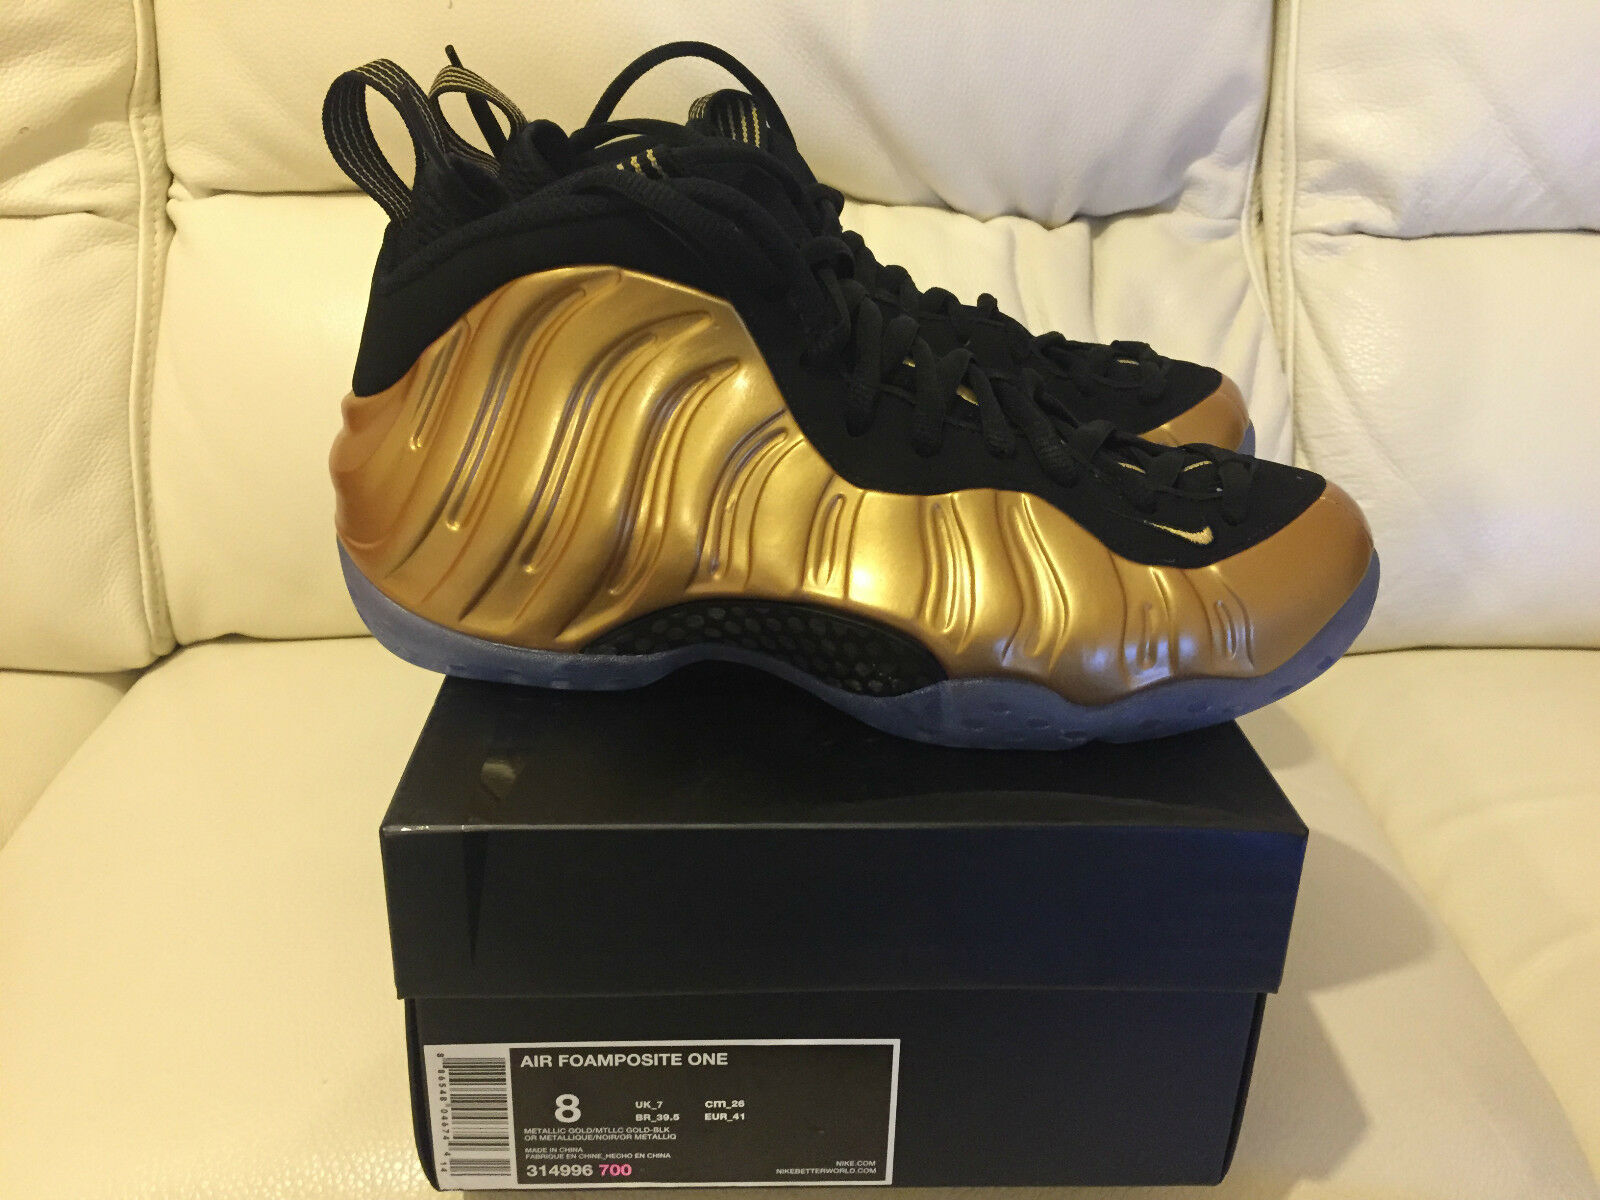 2015 NIKE AIR FOAMPOSITE NEW ONE METALLIC GOLD SIZE NEW FOAMPOSITE *LOOK* e9cd10